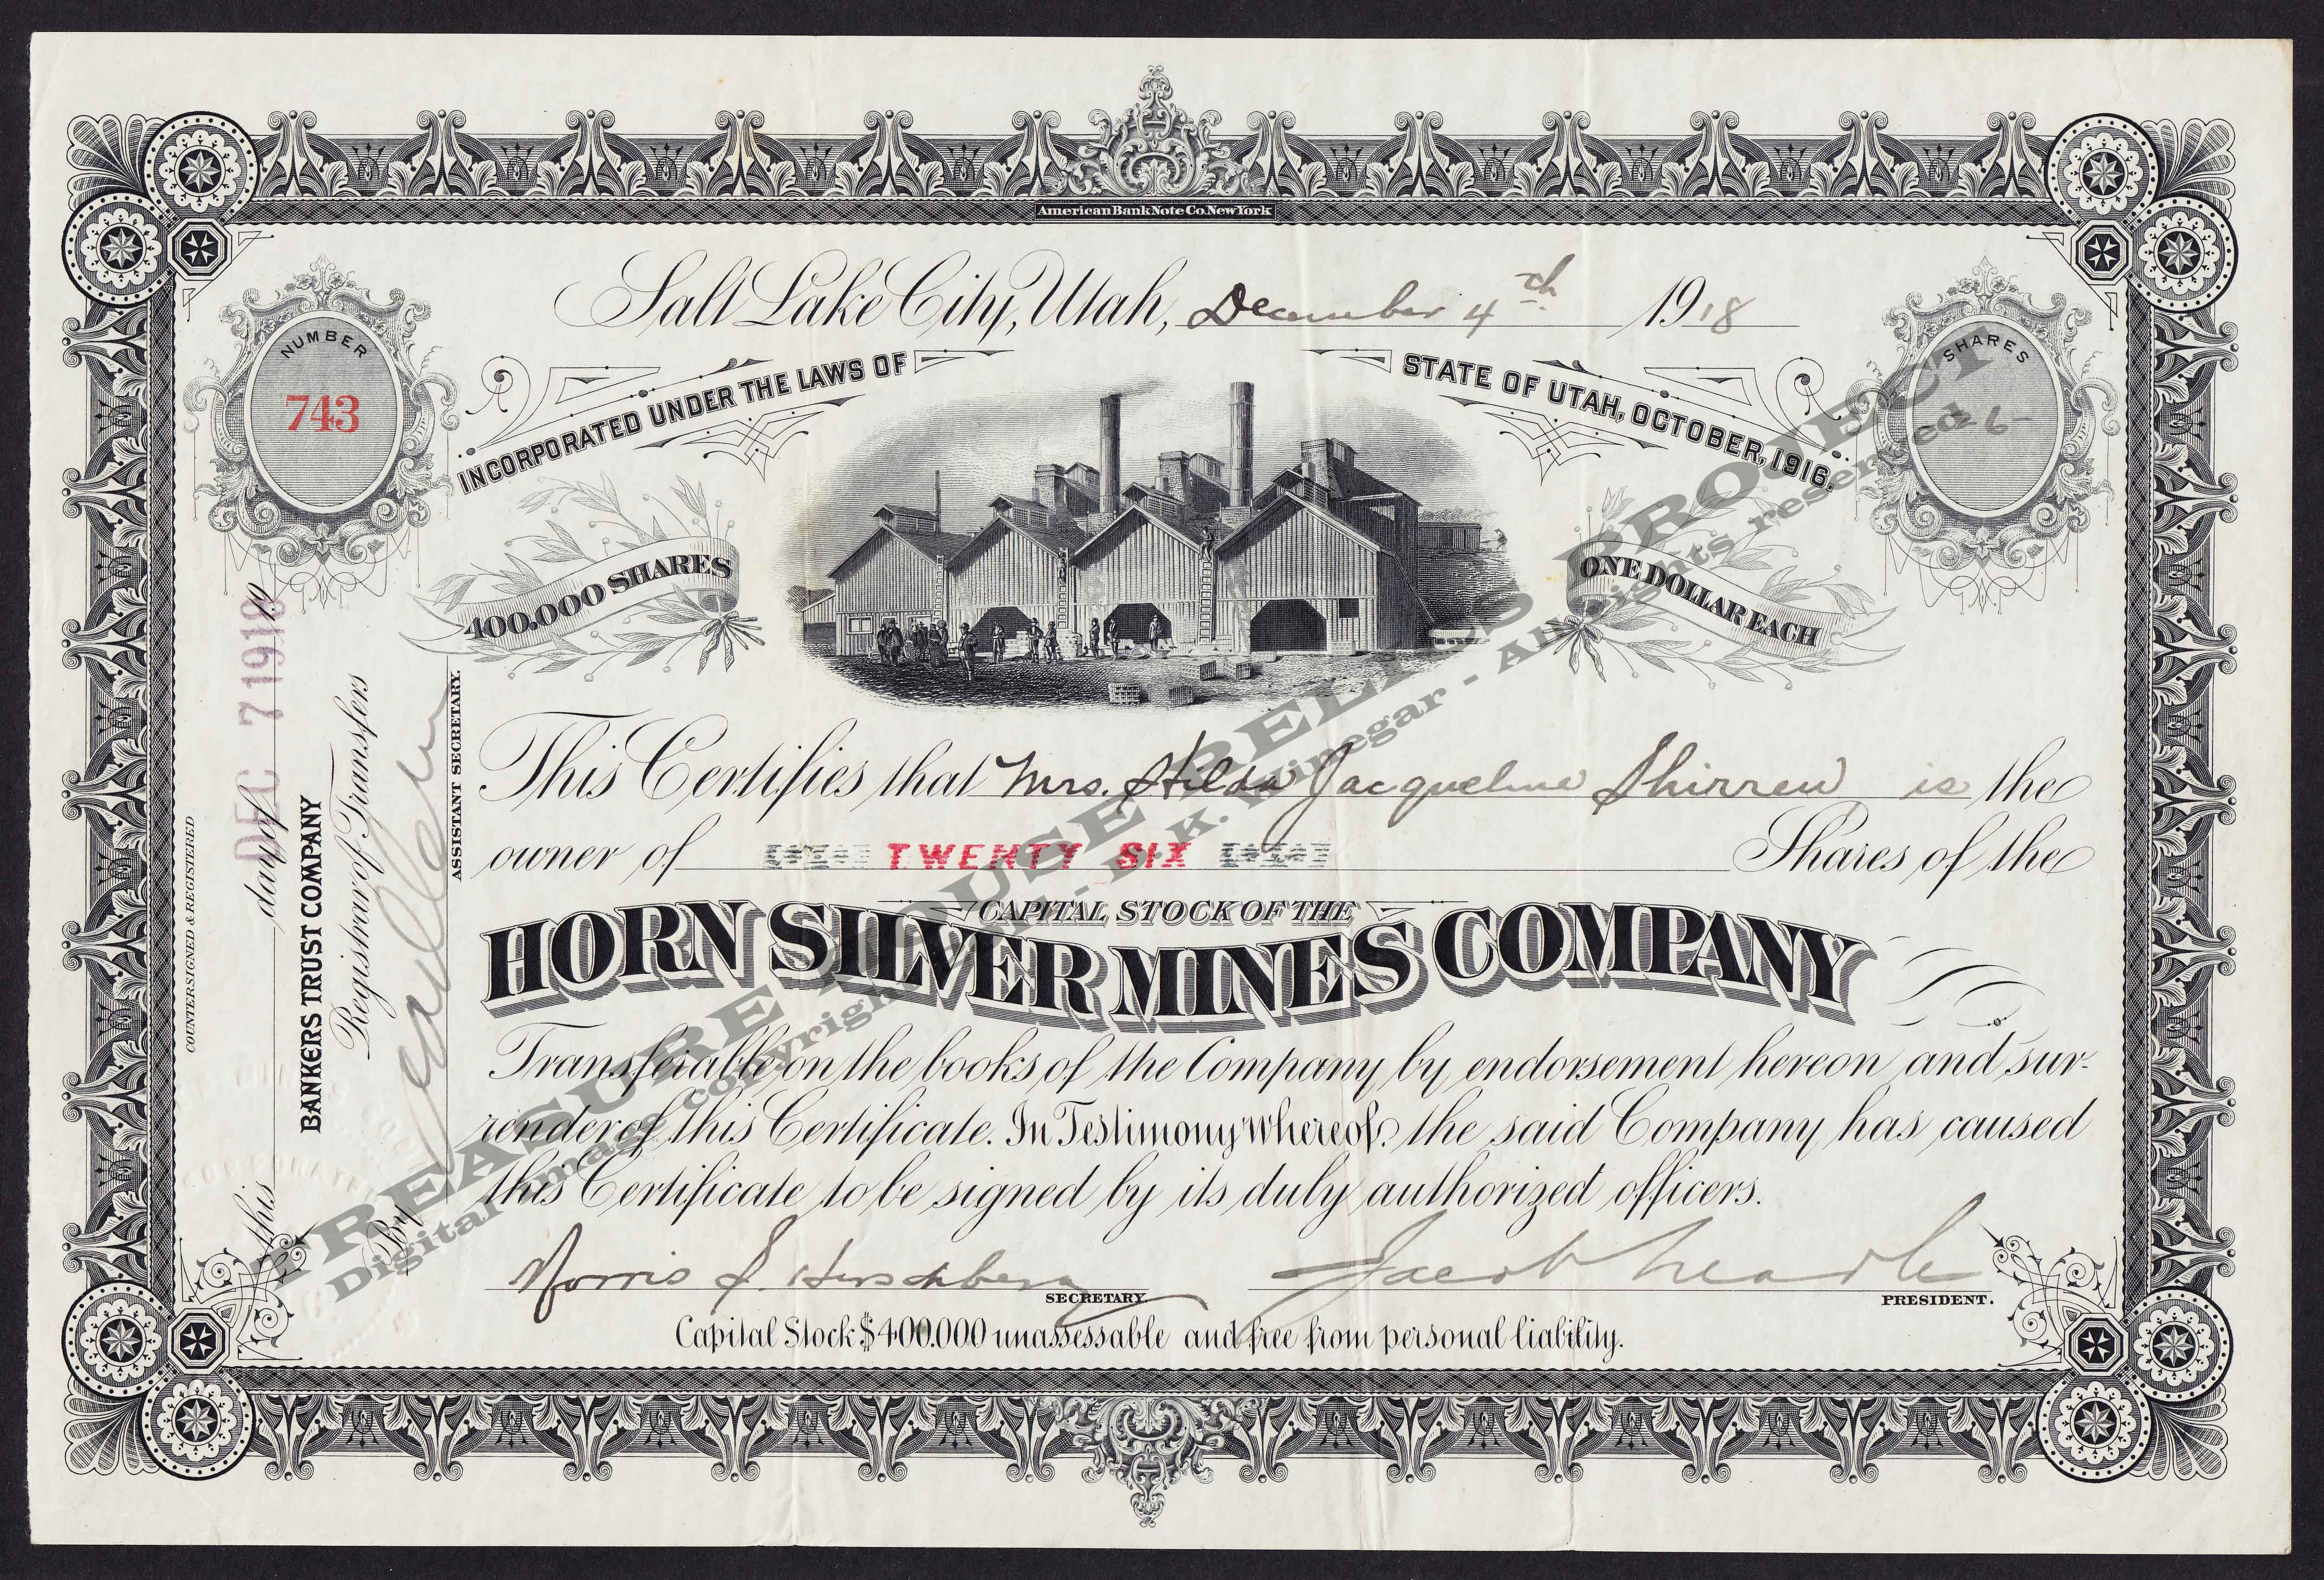 HORN_SILVER_MINES_COMPANY_743_1918_400_EMBOSS.jpg